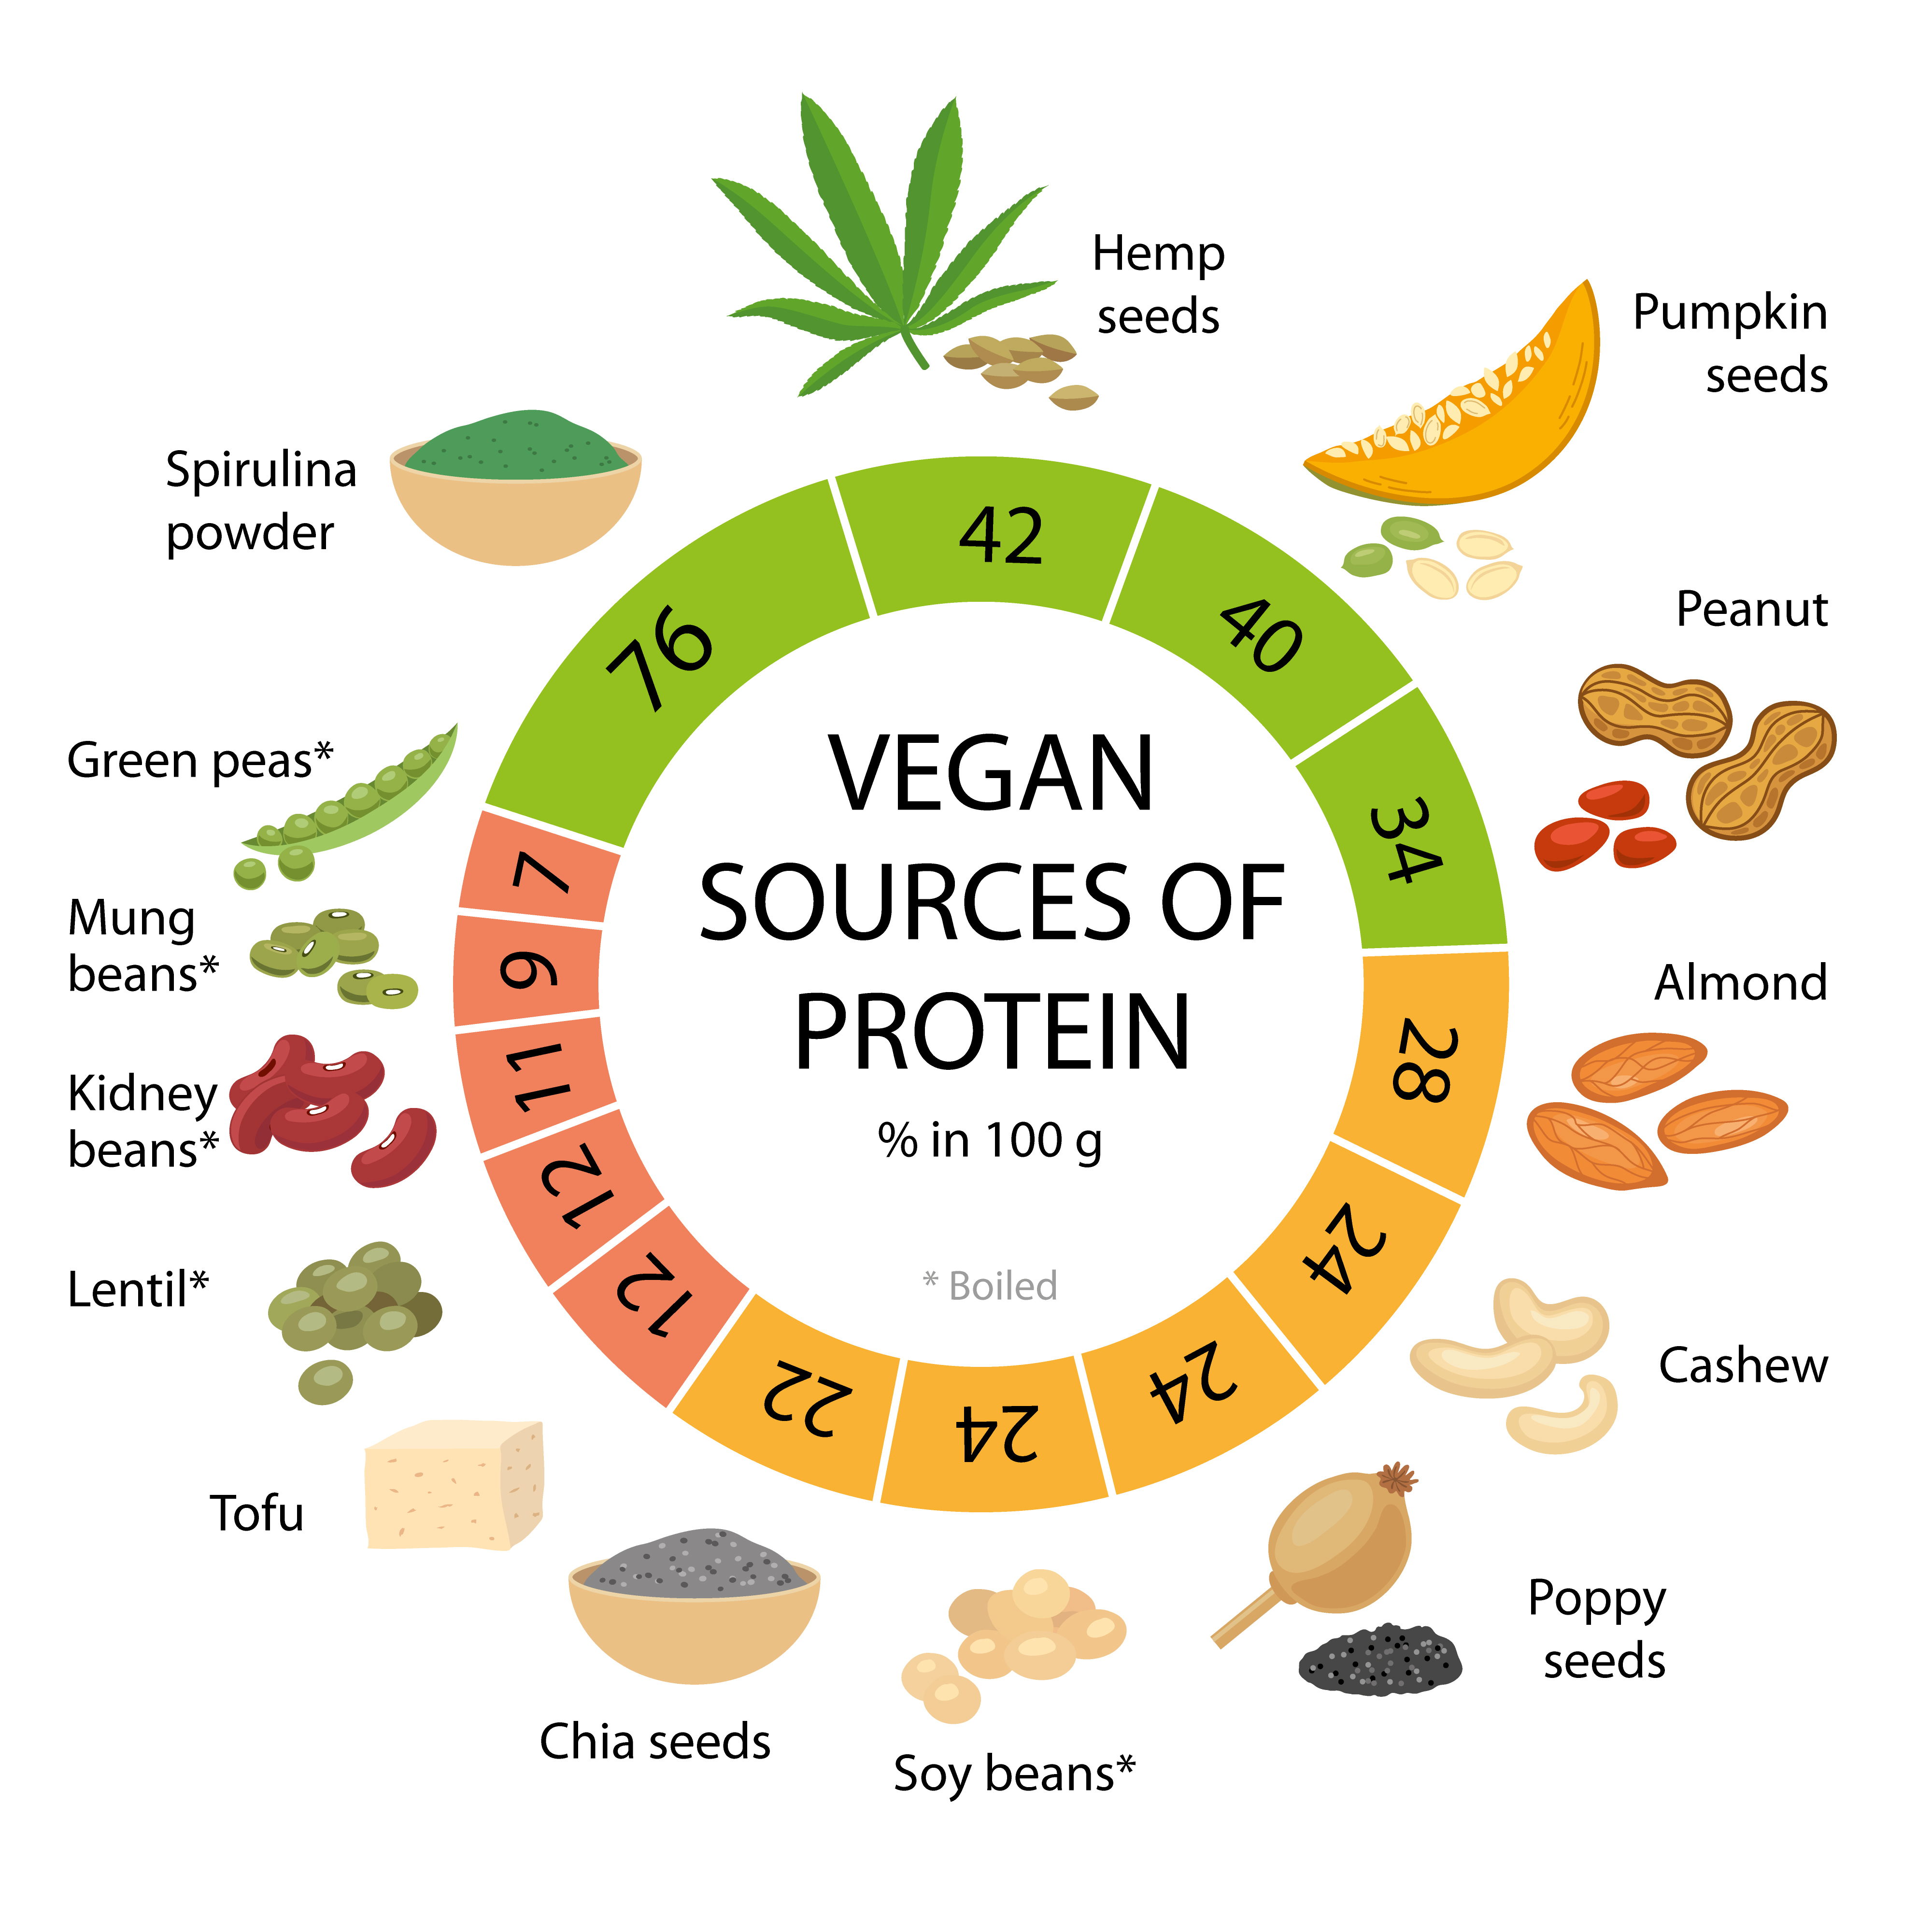 And which vegan products to choose?